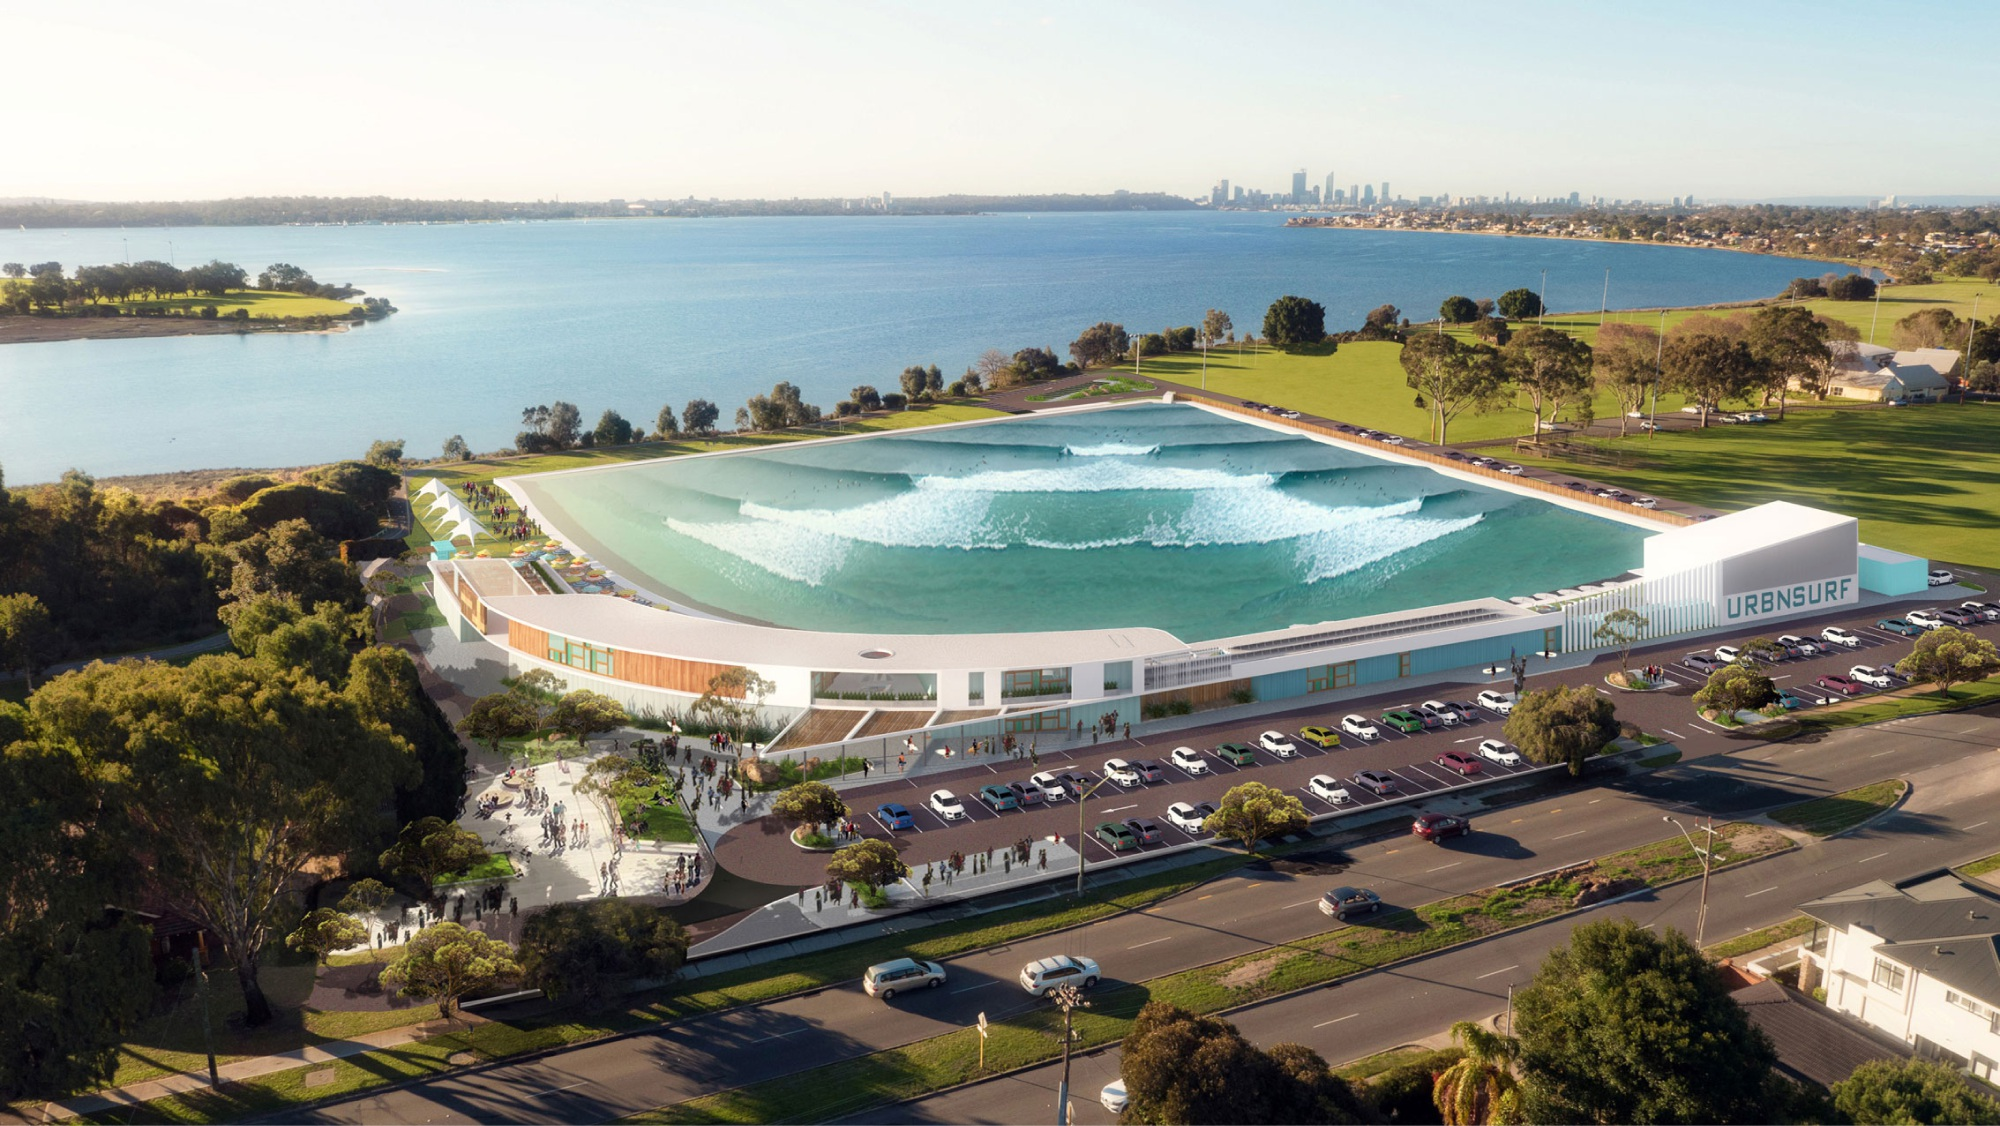 The new surf park: Less propoganda, less fear please.